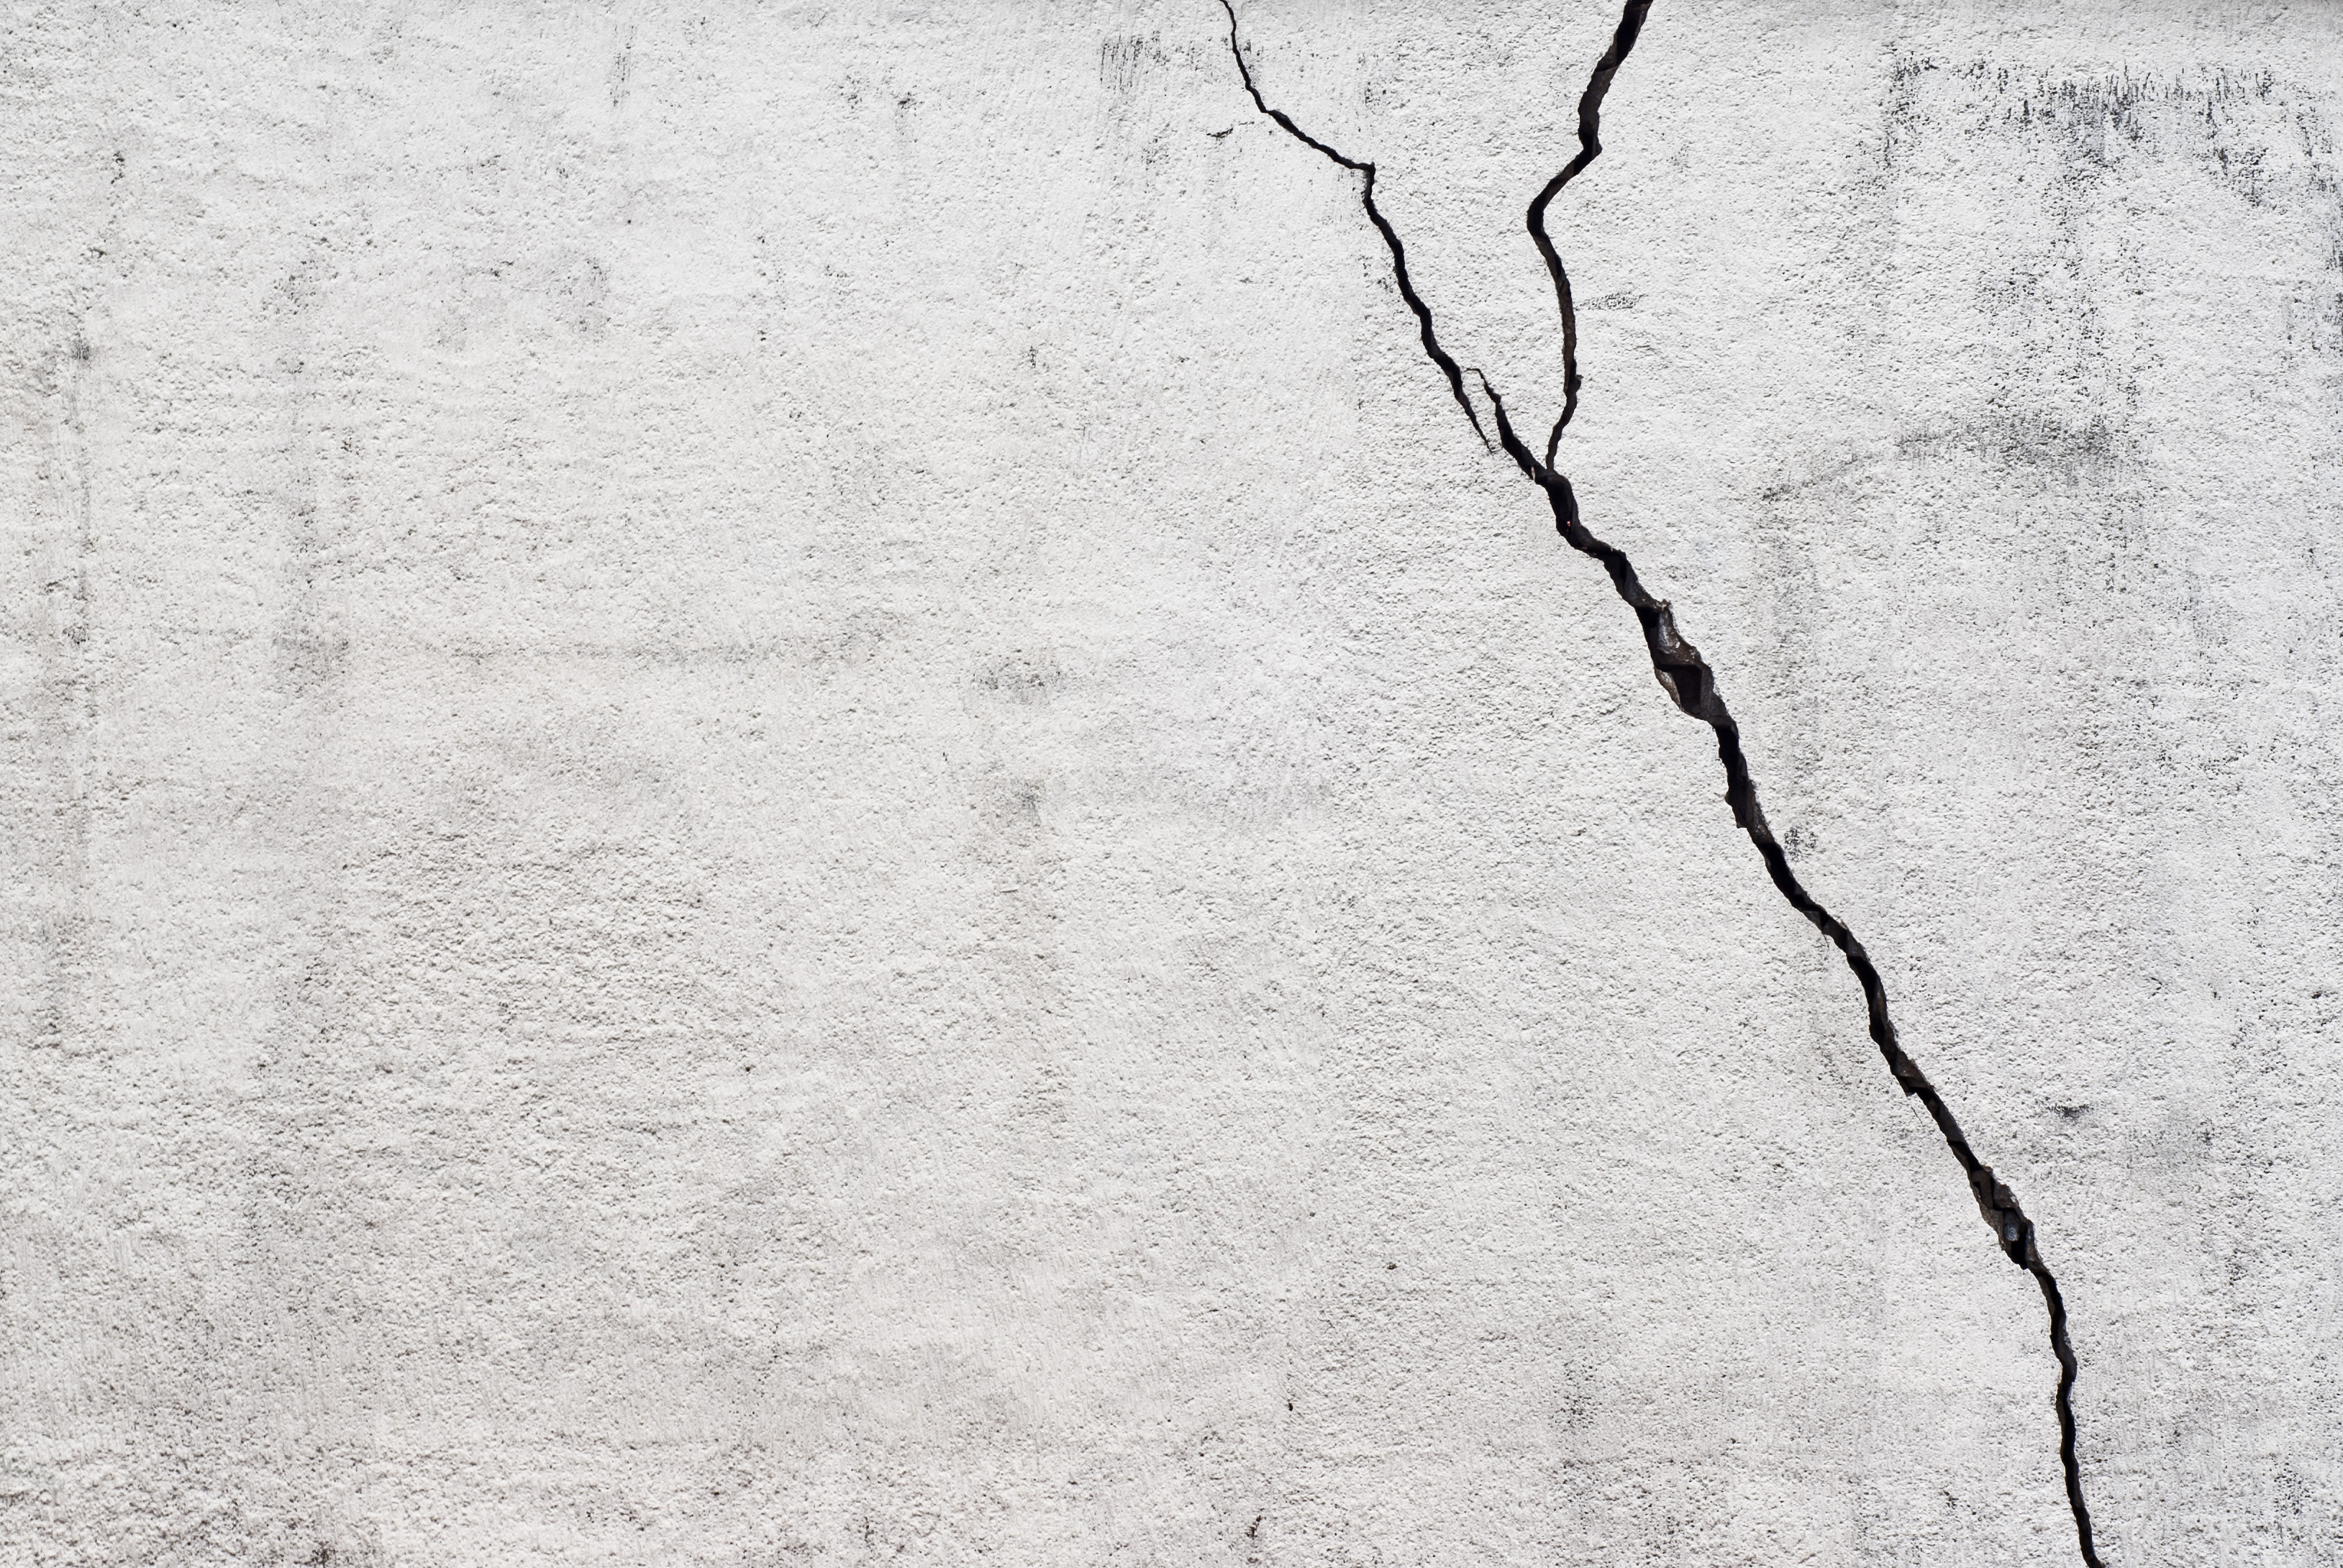 How to Determine if the Cracks in Walls Are Serious | Home Guides ...